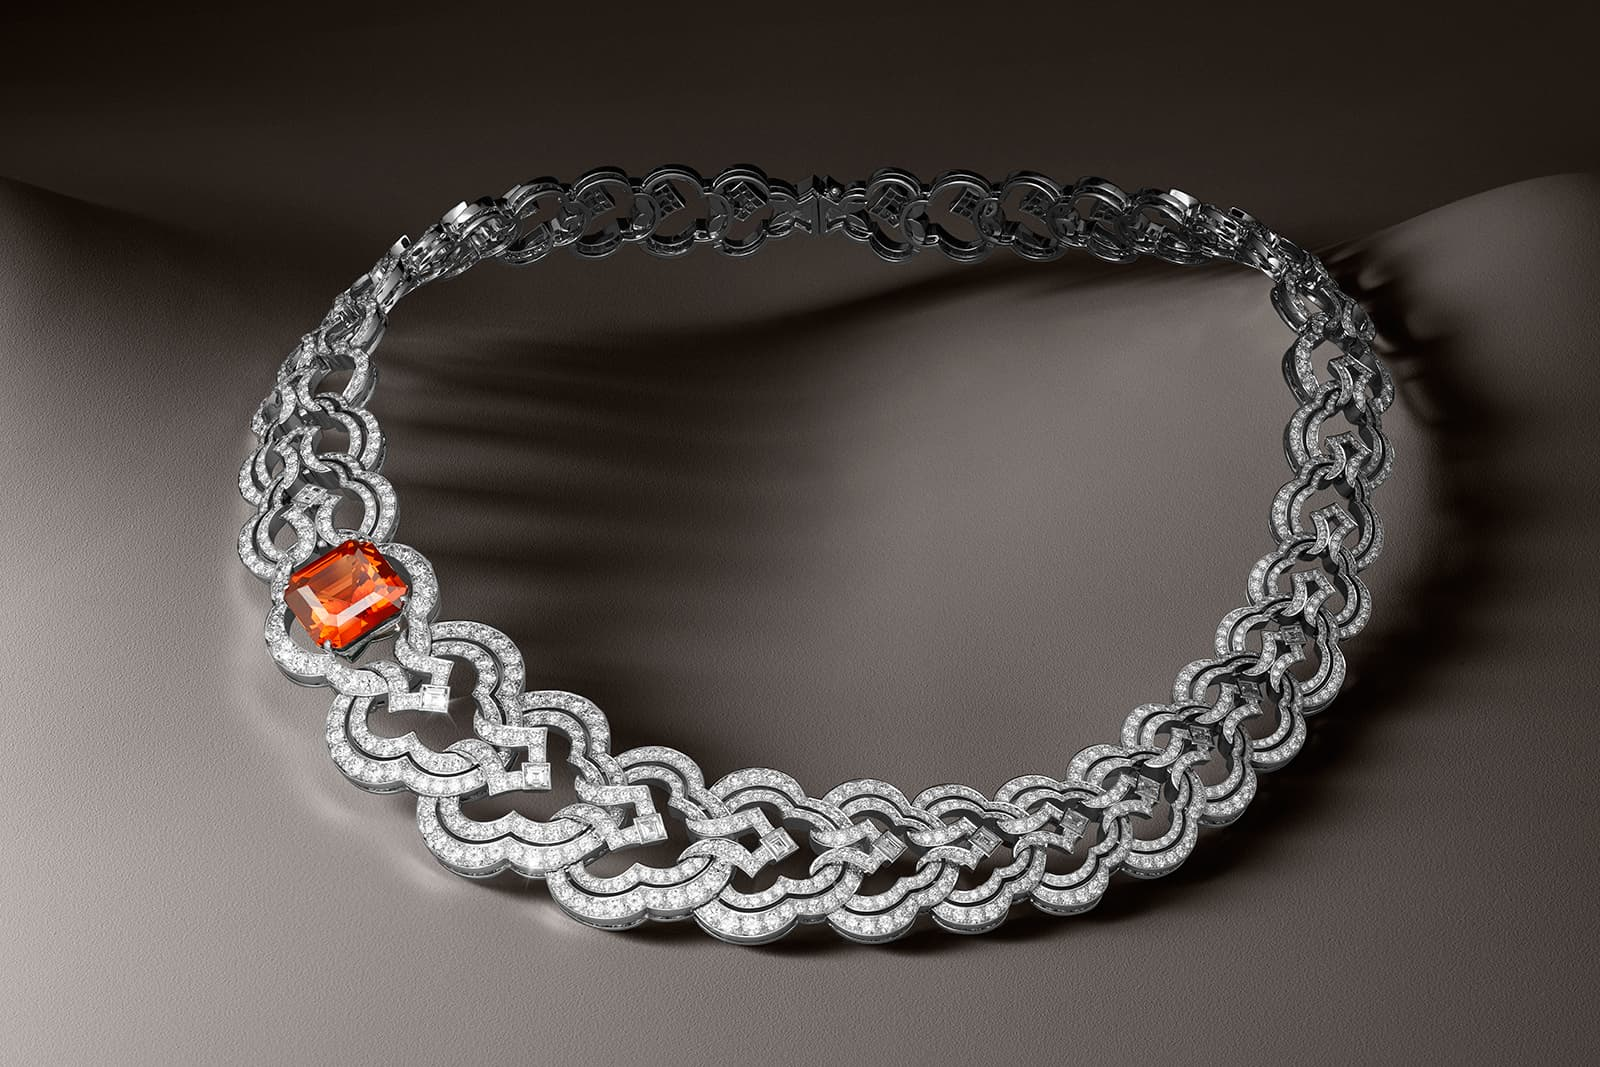 Louis Vuitton Conquêtes collection necklace with 16.82ct mandarin garnet and diamonds in white gold